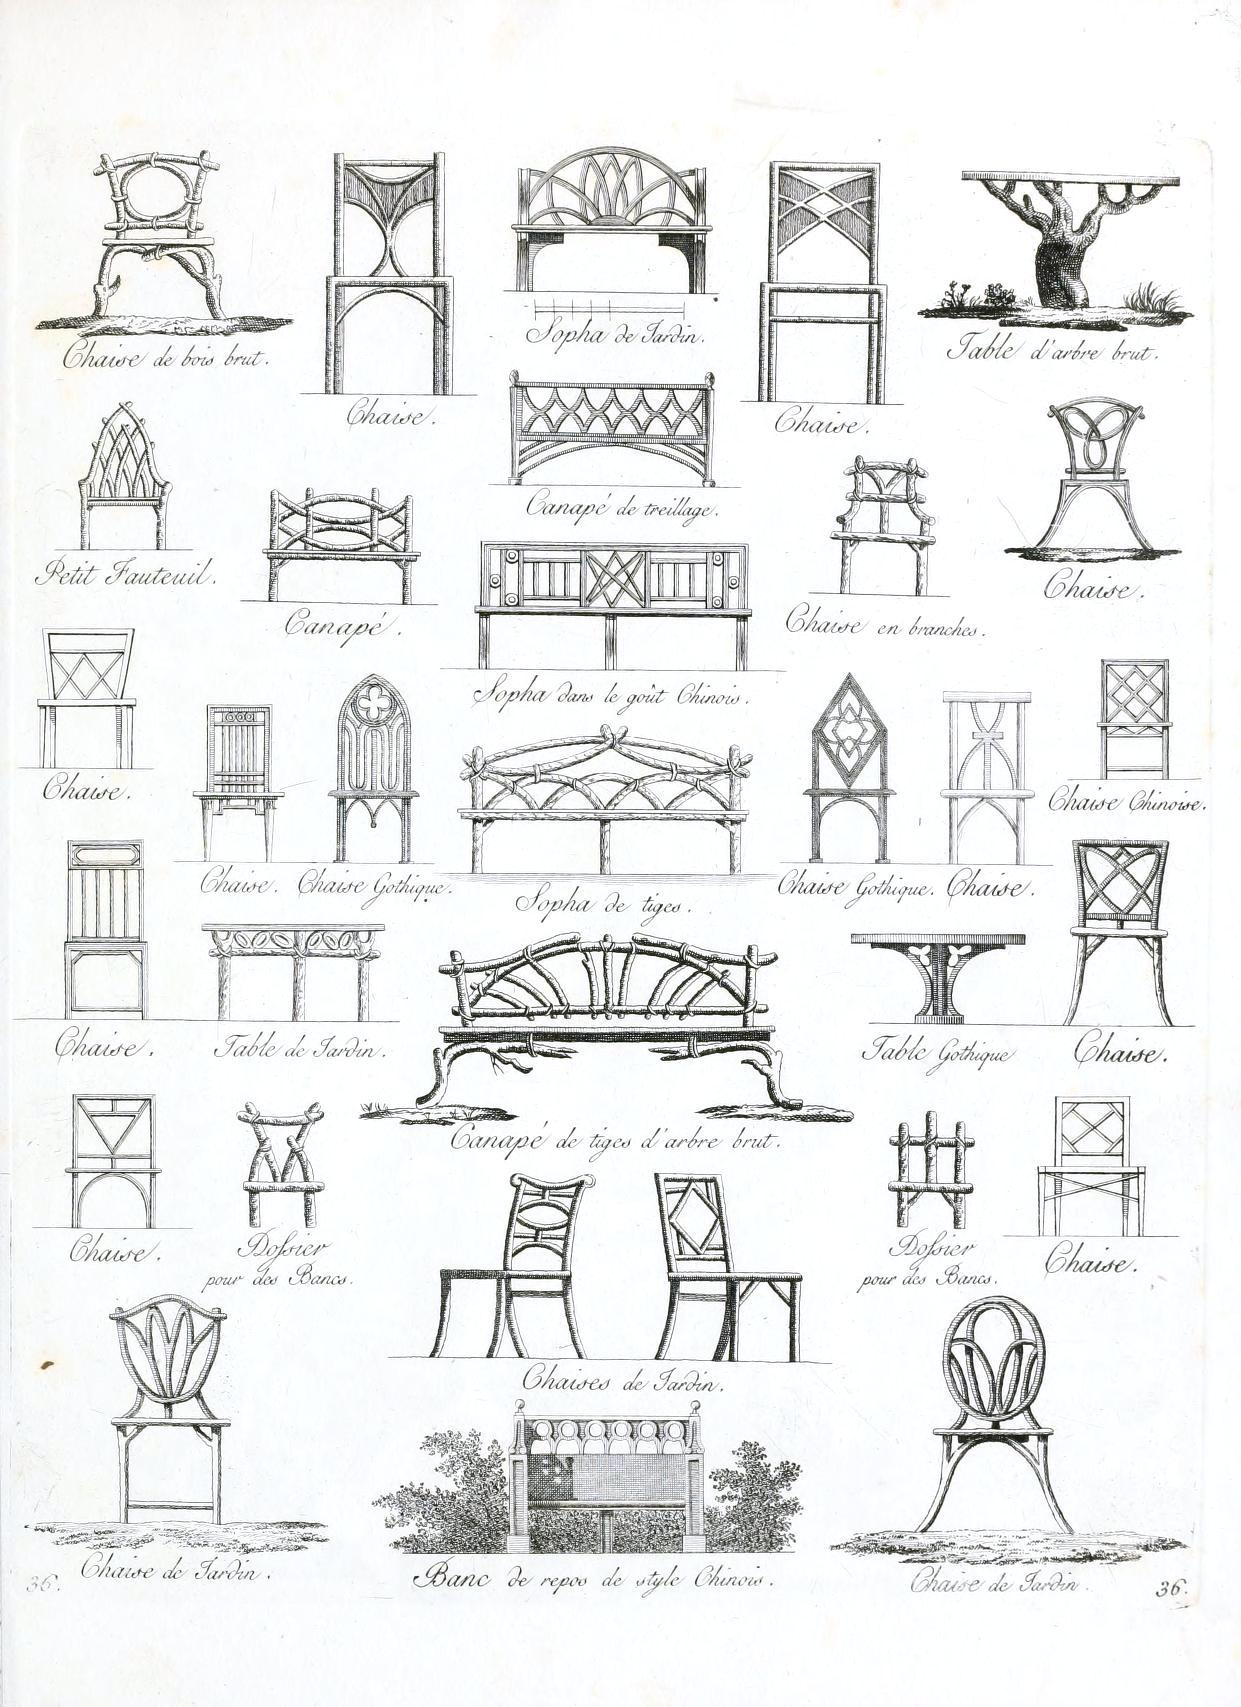 A Short History of Outdoor Furniture | Summer Classics